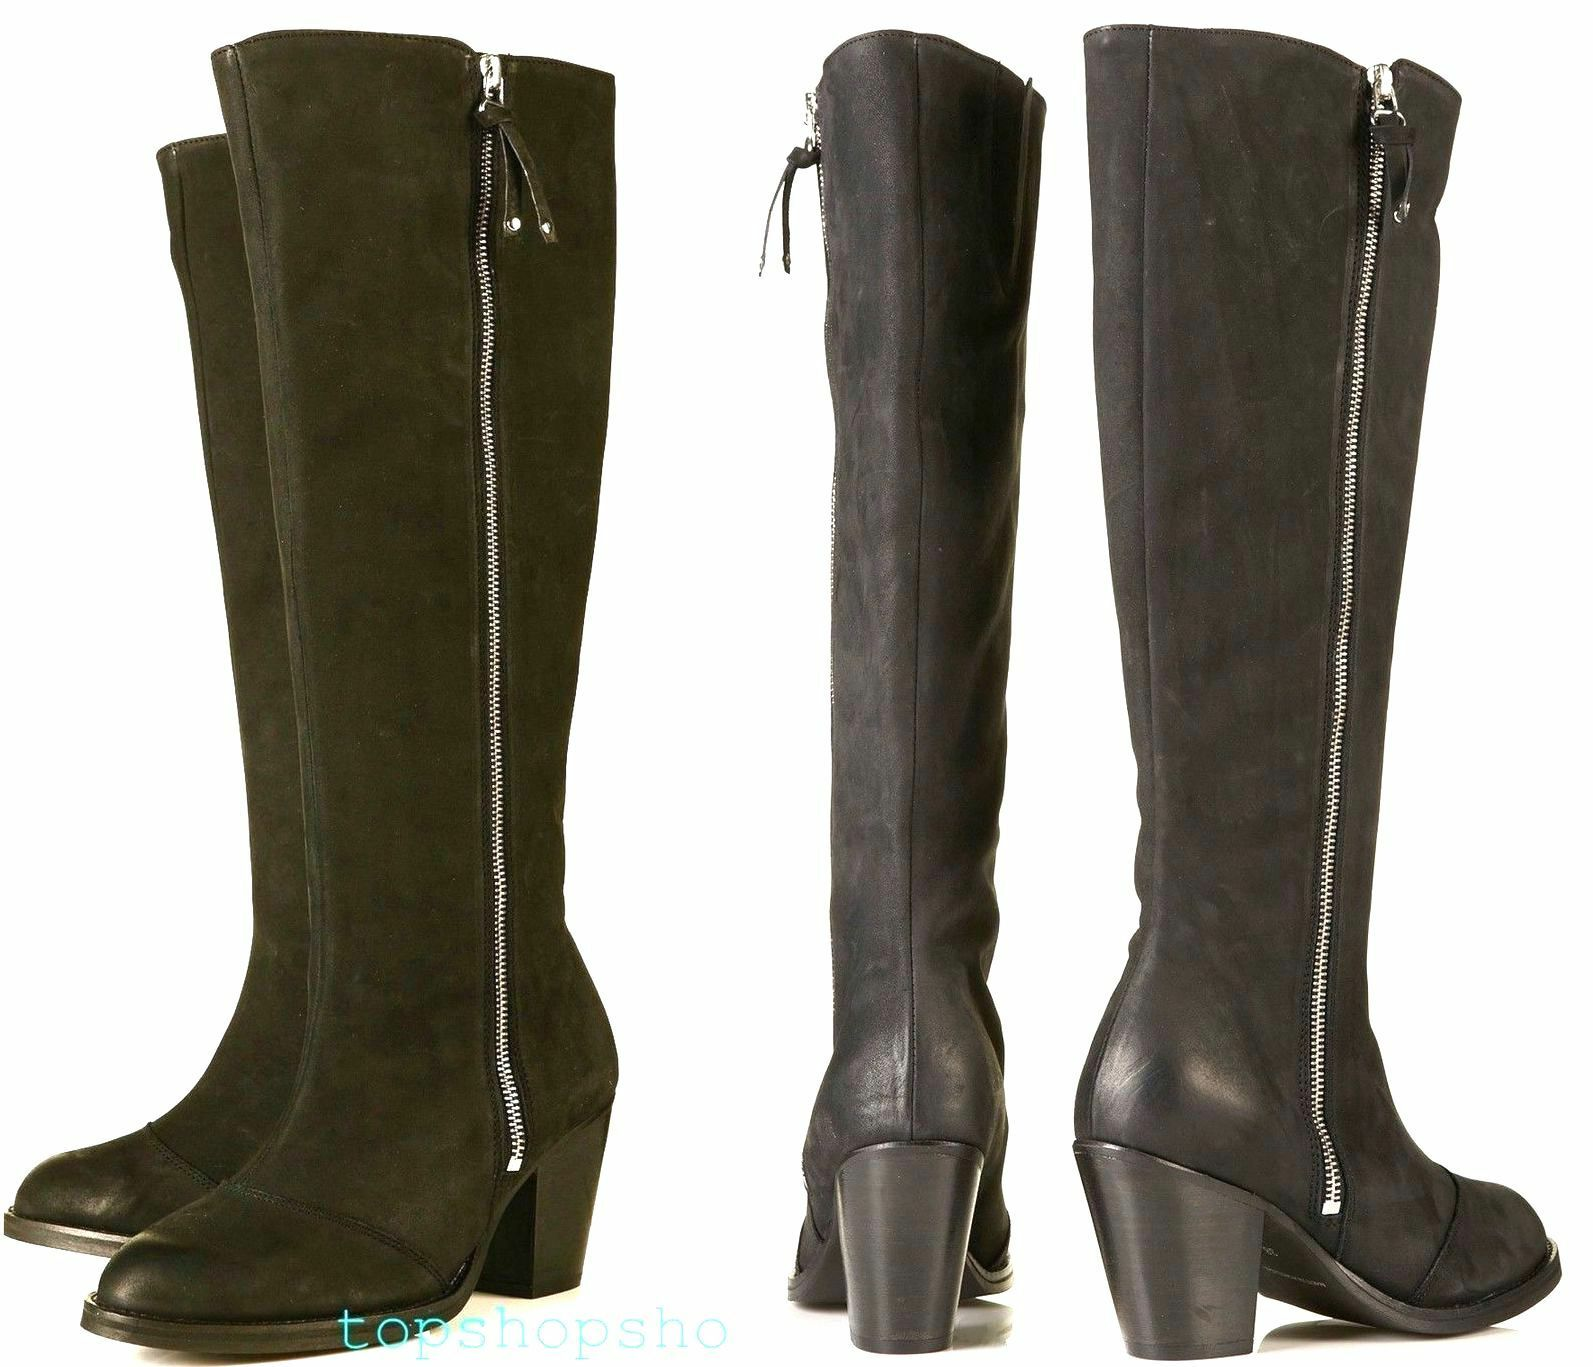 TOPSHOP GENUINE LEATHER HIGH BOOTS LEG ZIP BIKER MOTORCYCLE BOOTS HIGH AMBUSH NEW 2390a1